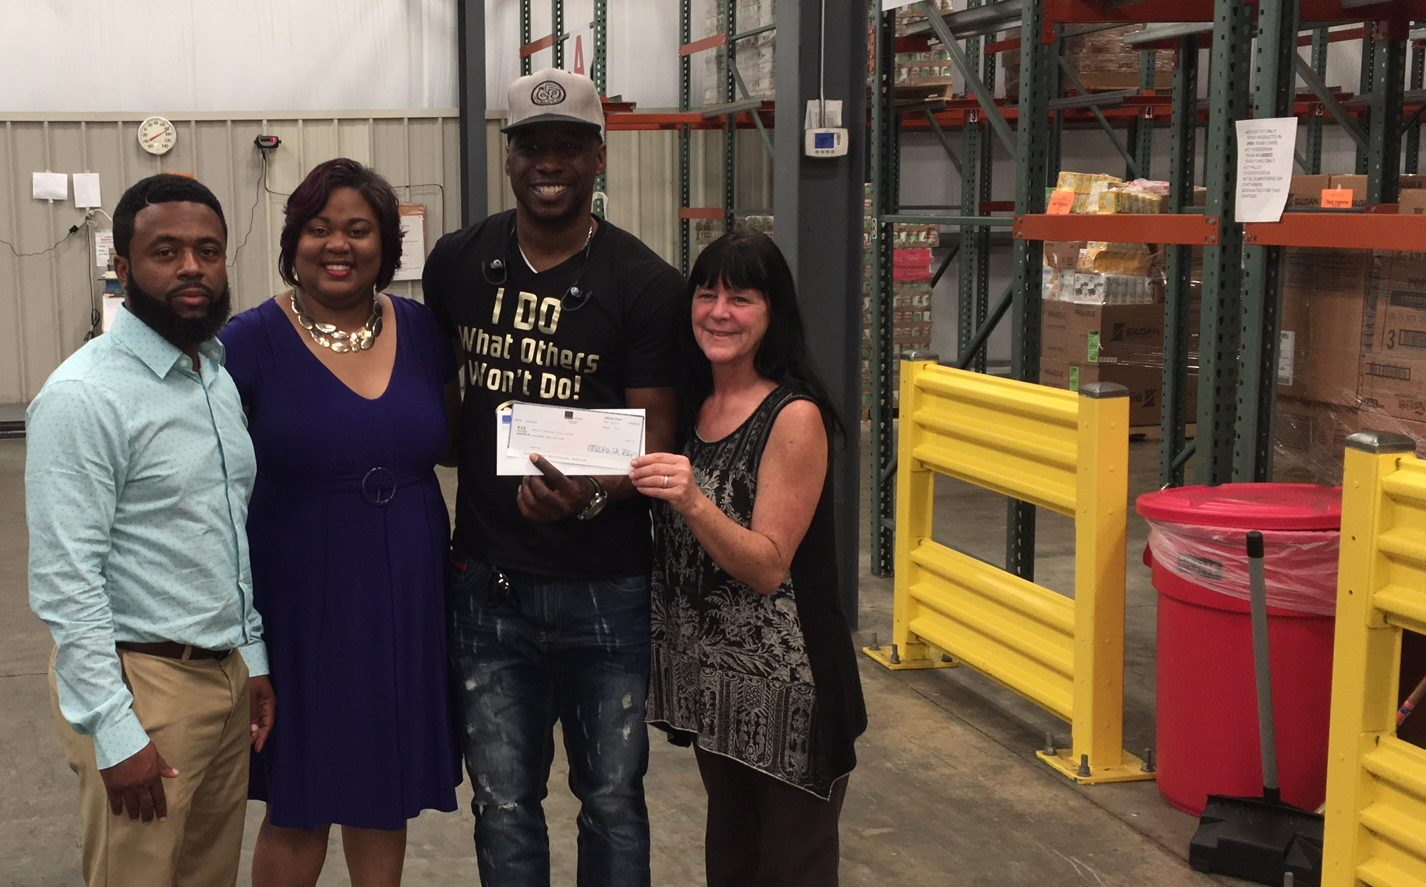 DayDreams Event Serves Over 1,000 Meals